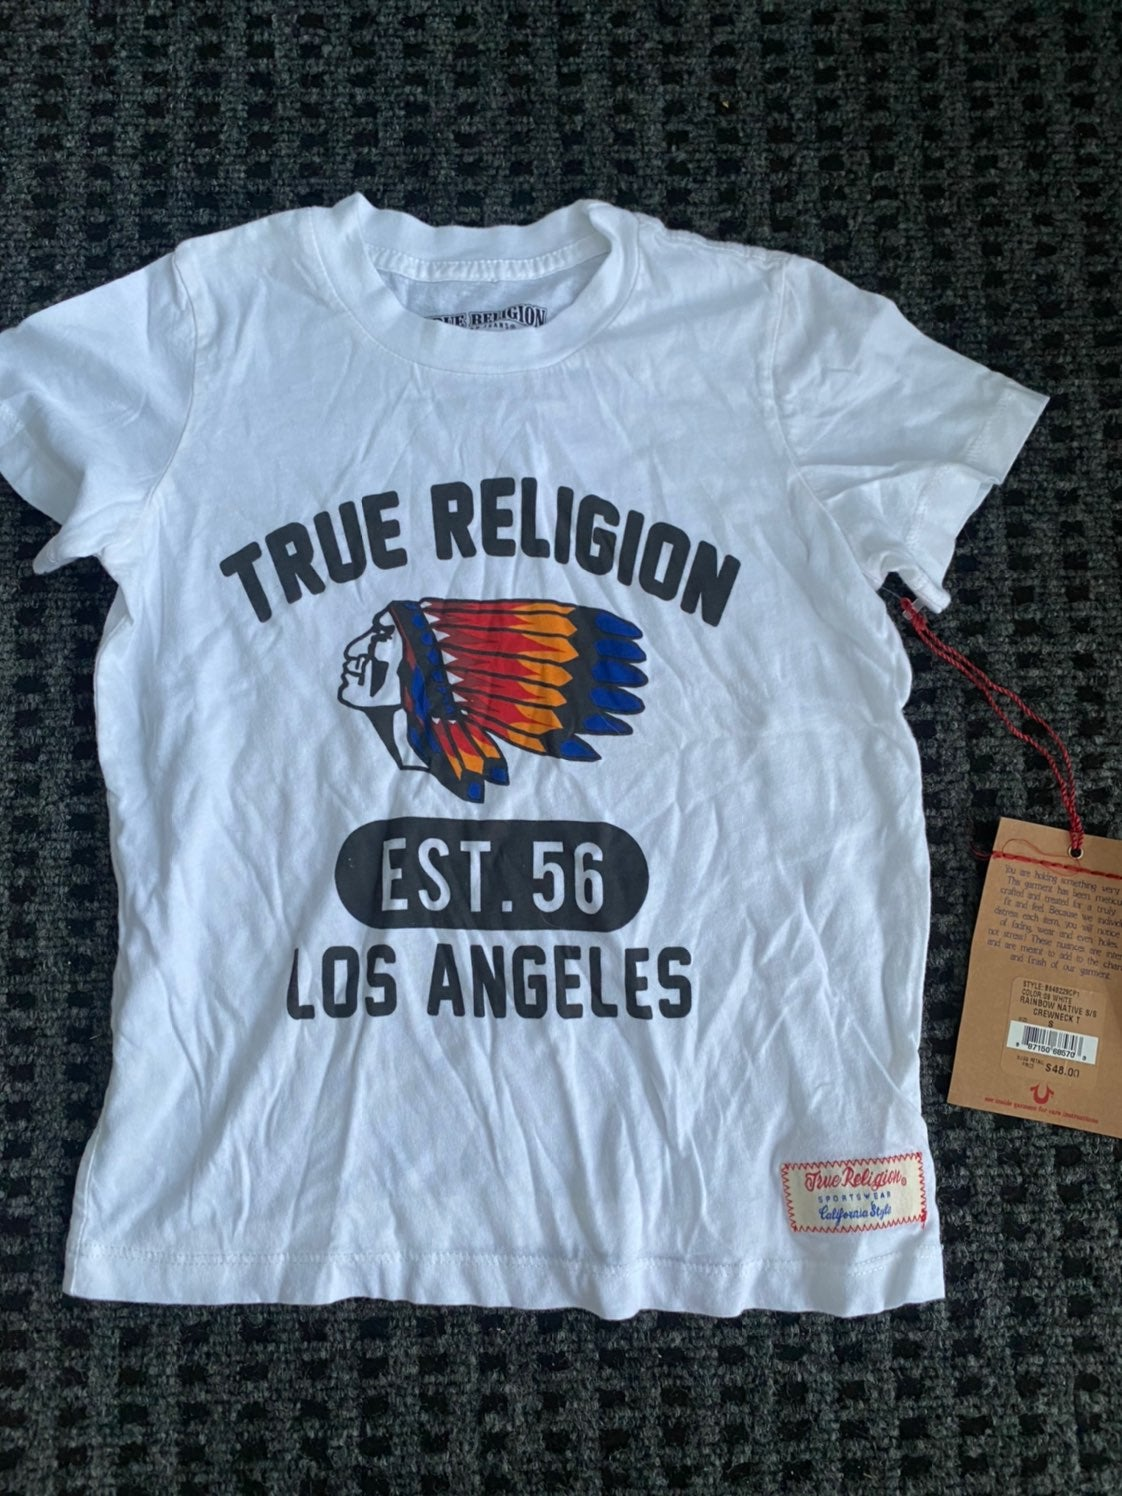 True religion boys shirt